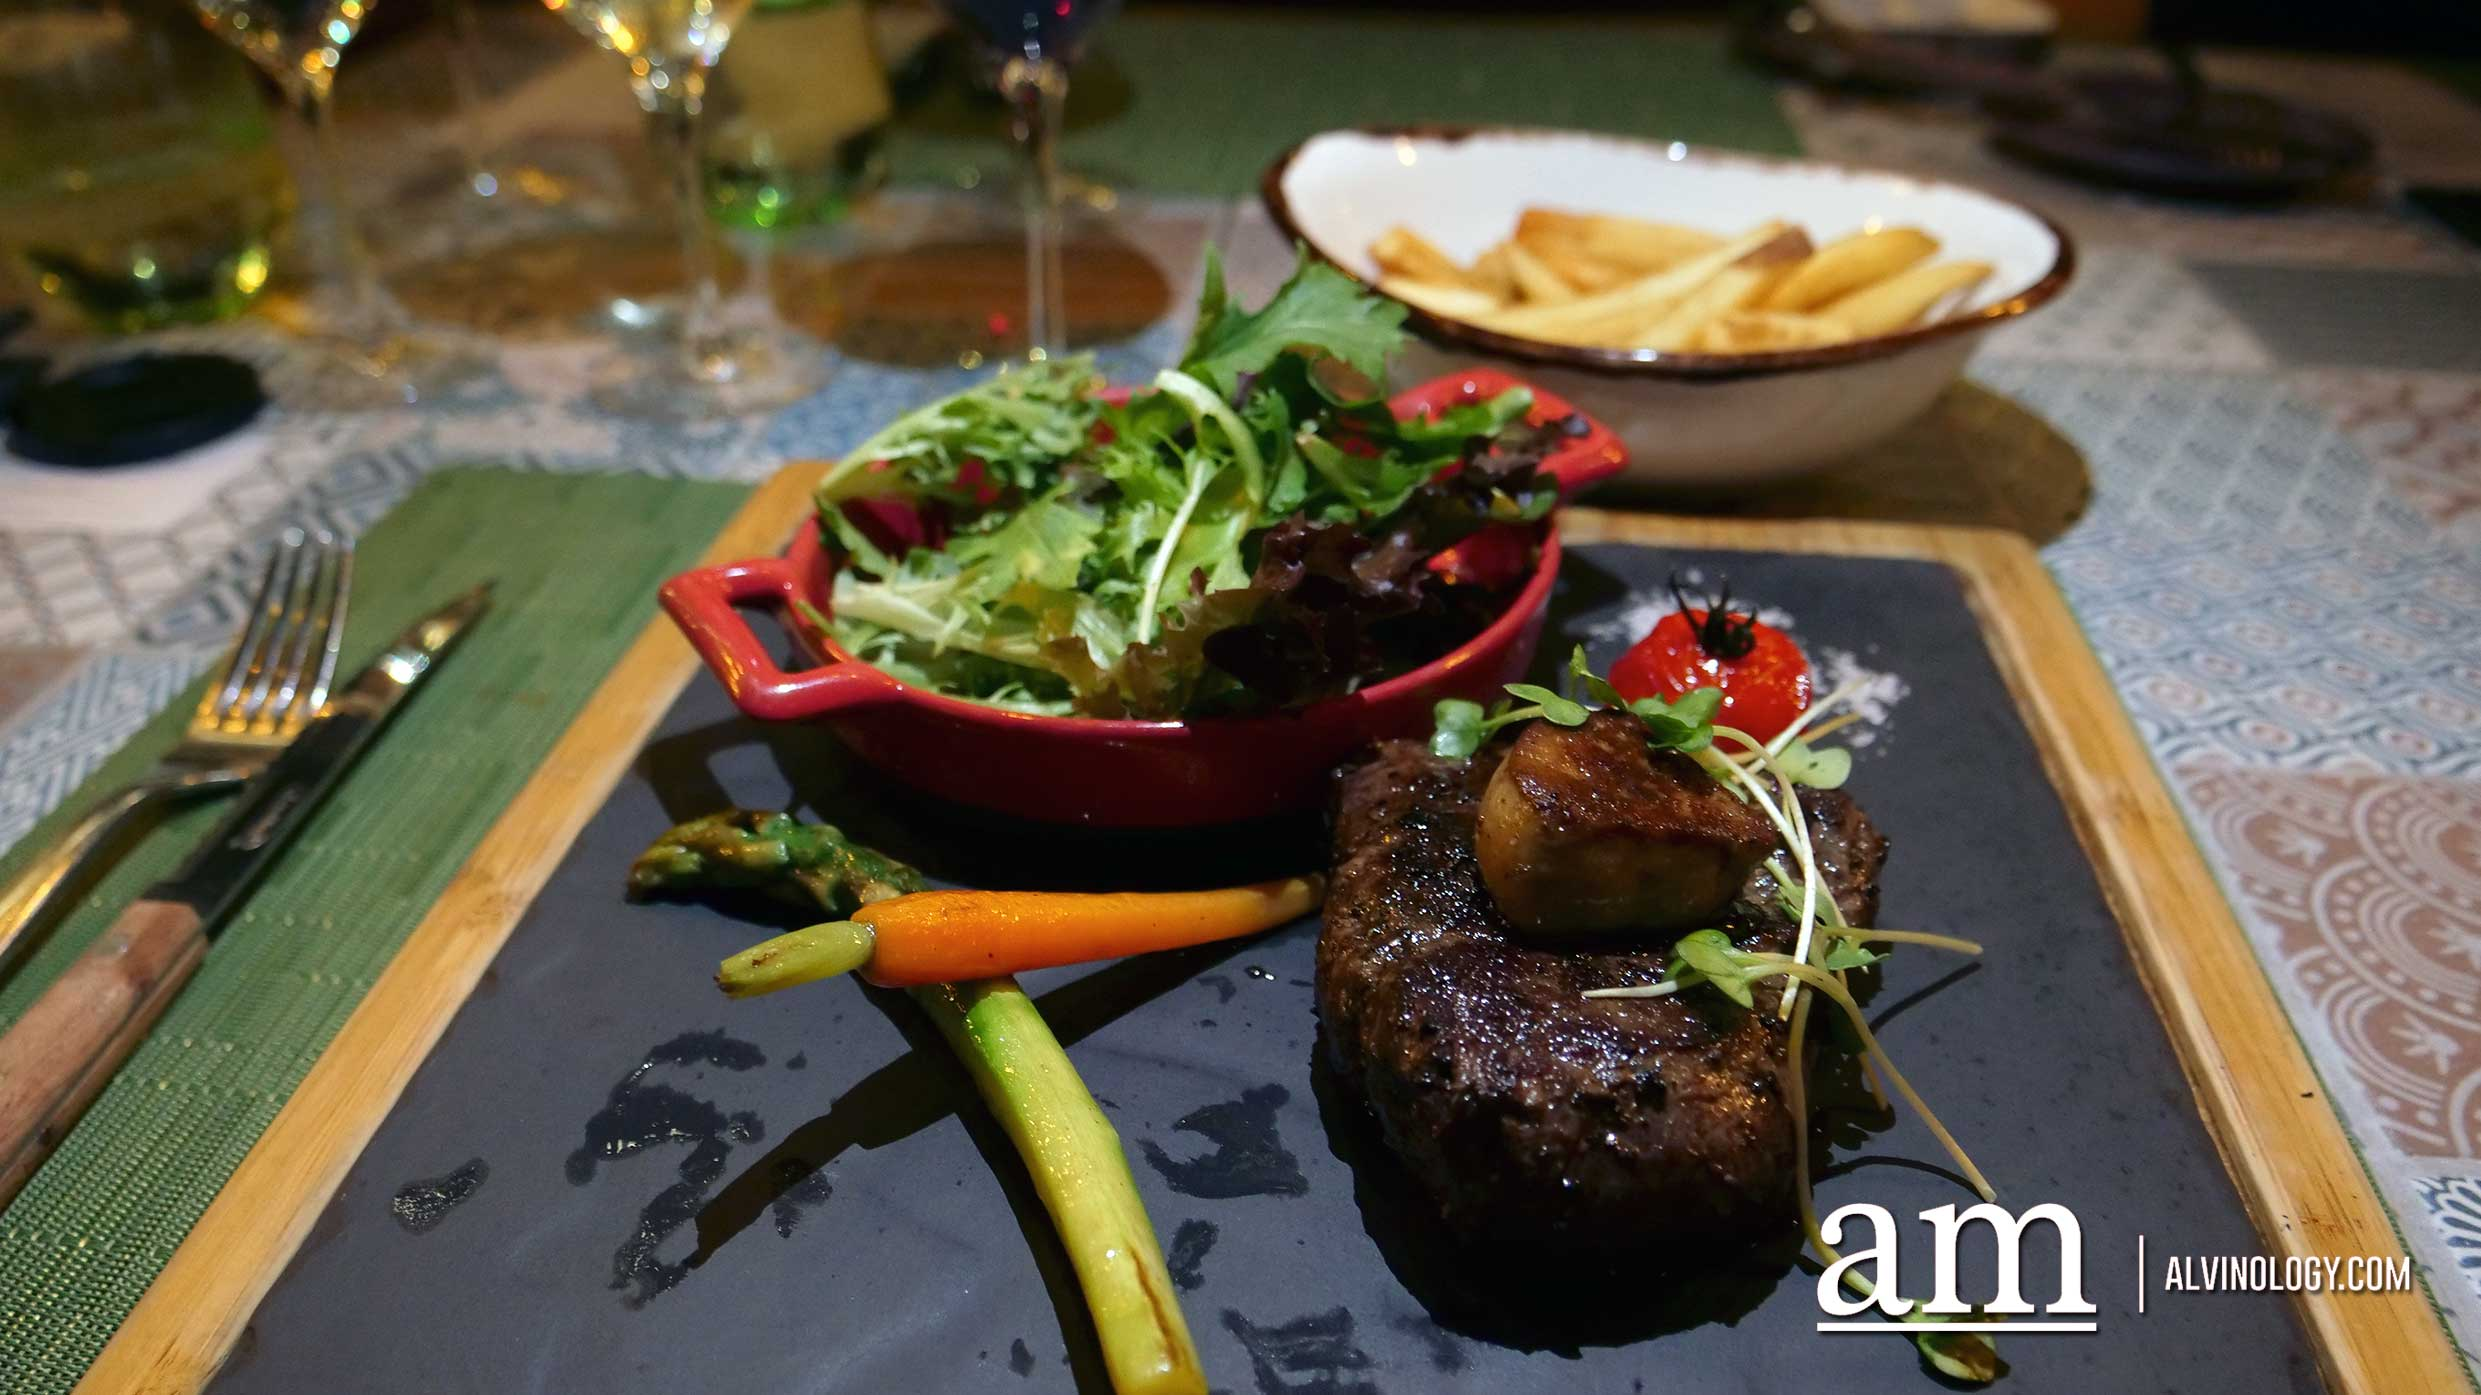 Beef Tenderloin 250g (sampling half portion) - 150-days grain-fed MS2+ beef tenderloin evenly-seared and served with foie gras, vine tomatoes and asparagus with a side of handmade green peppercorn sauce, $87